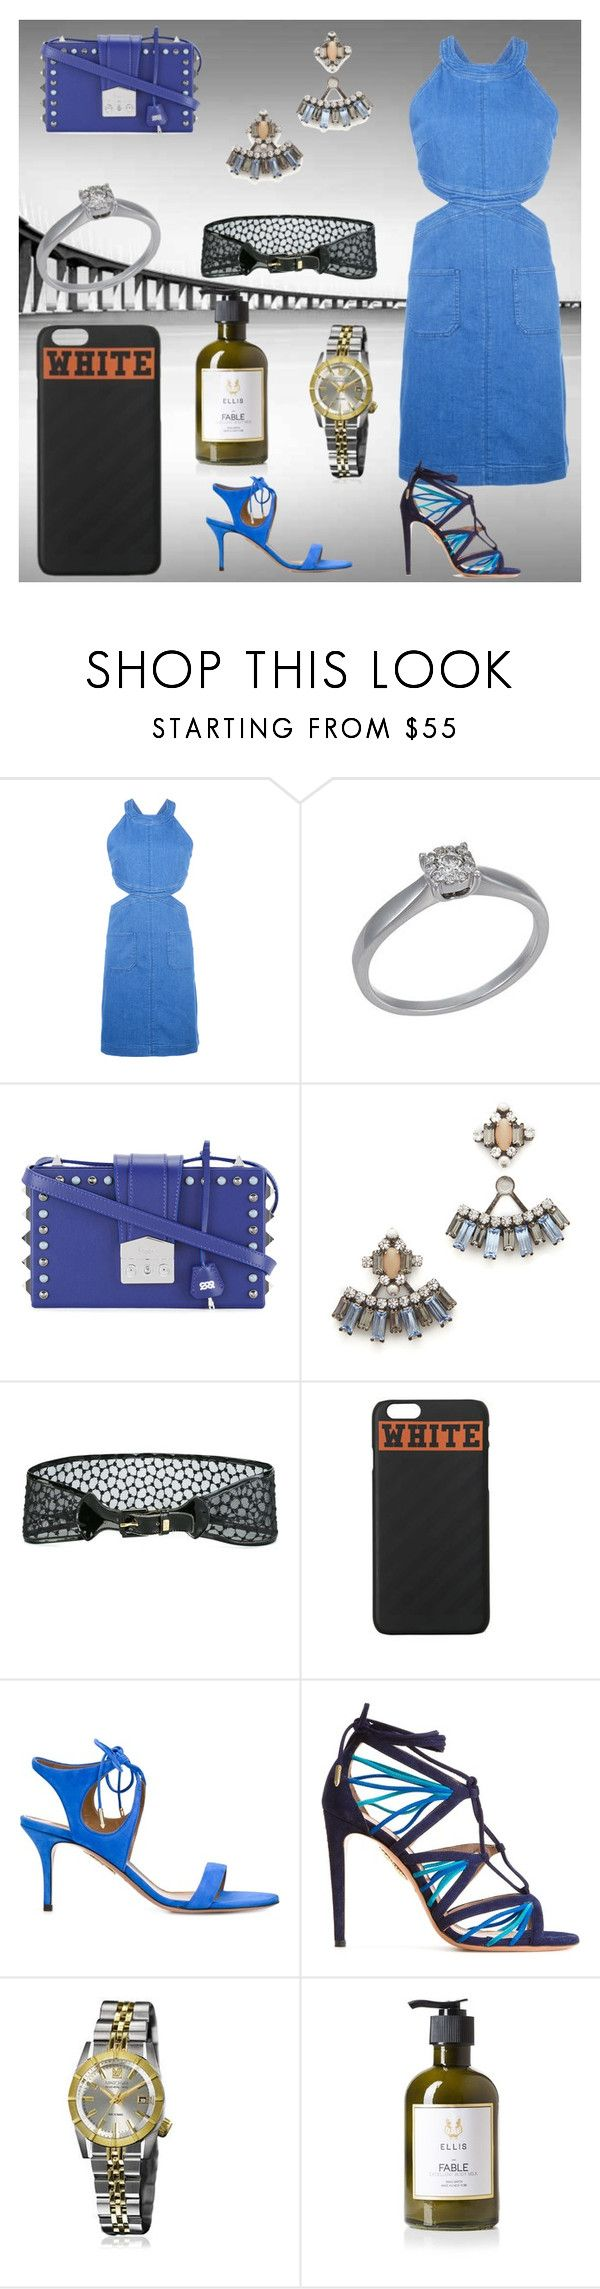 """Nice sale offer"" by denisee-denisee ❤ liked on Polyvore featuring STELLA McCARTNEY, Bliss by Damiani, SALAR, DANNIJO, Yves Saint Laurent, Off-White, Aquazzura, March LA.B and Ellis Brooklyn"